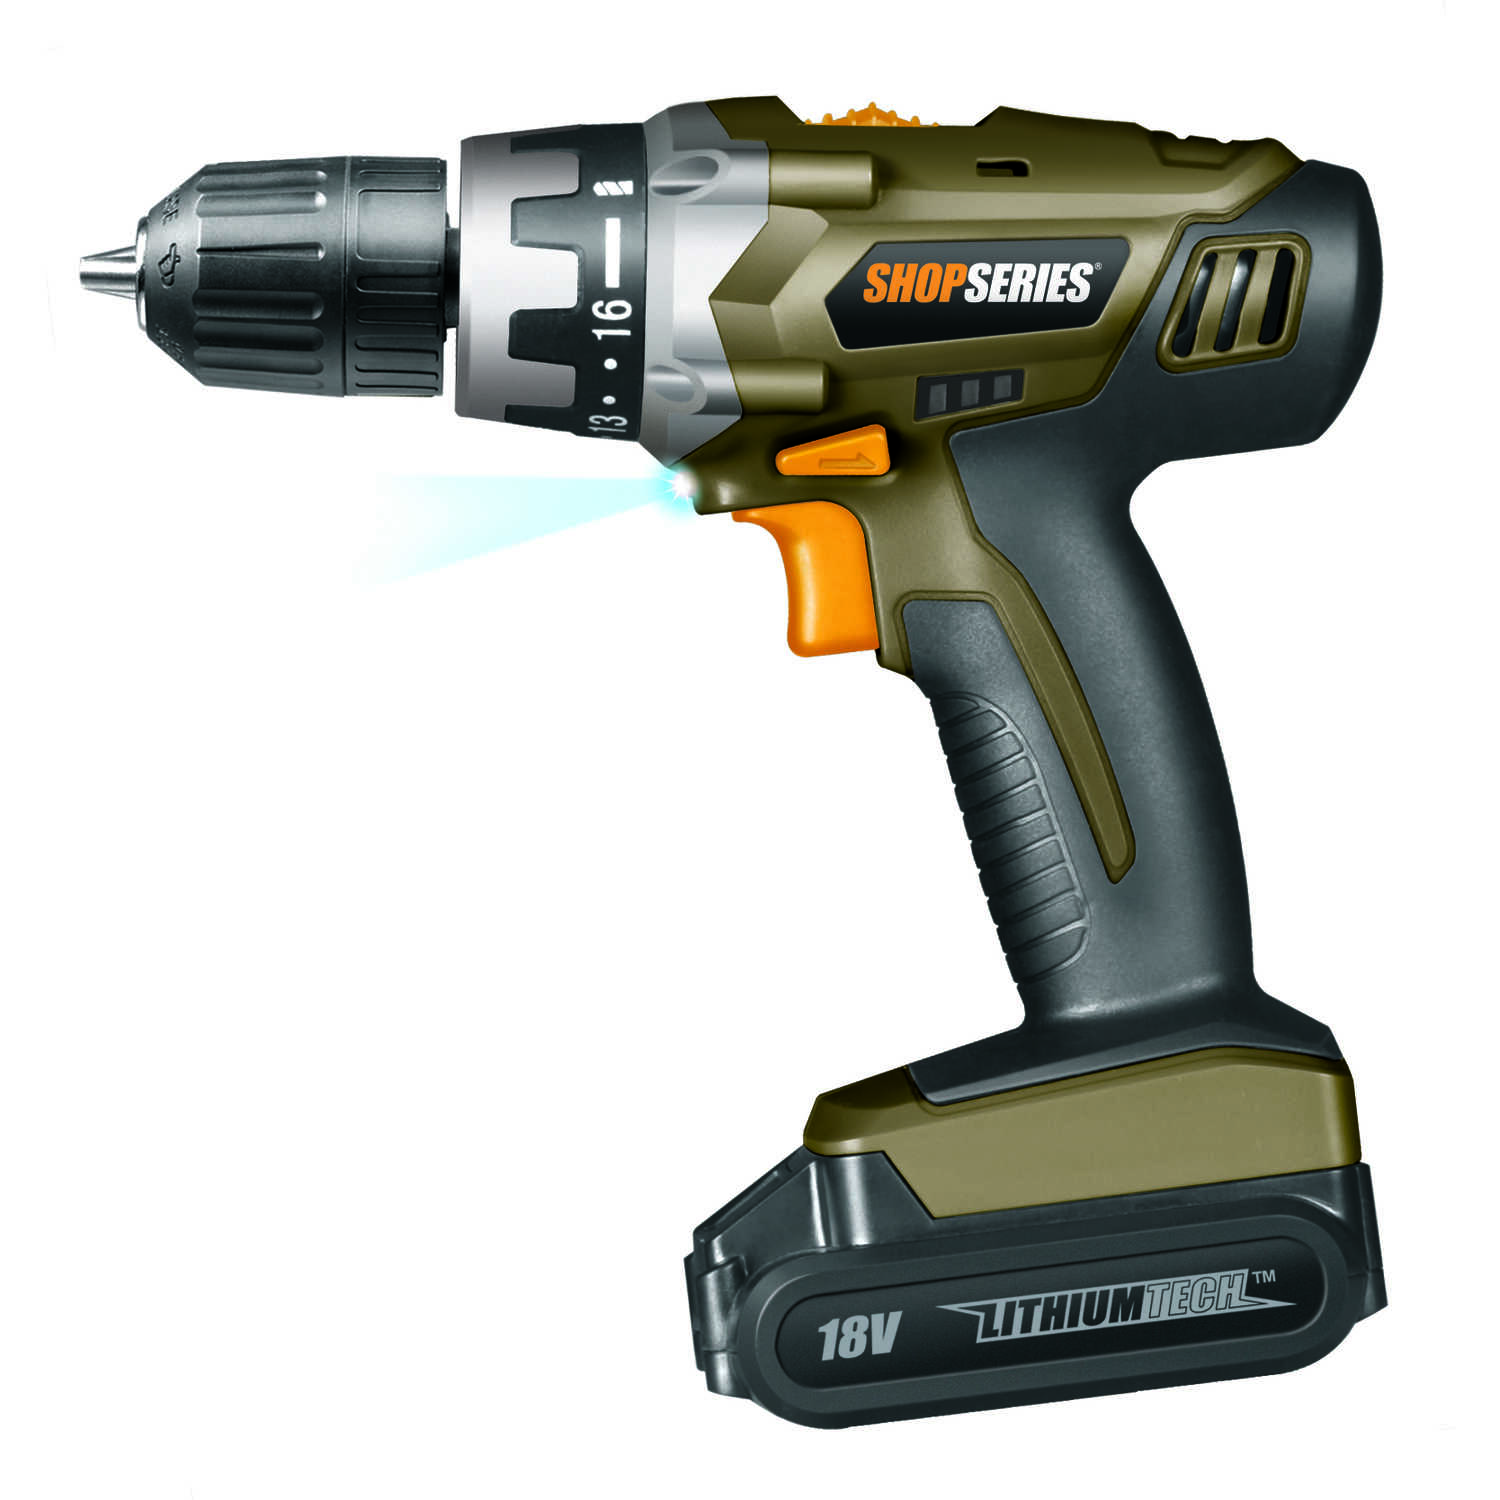 Rockwell  Shopseries  18 volt 3/8 in. Cordless Drill/Driver  1200 rpm 2 speed